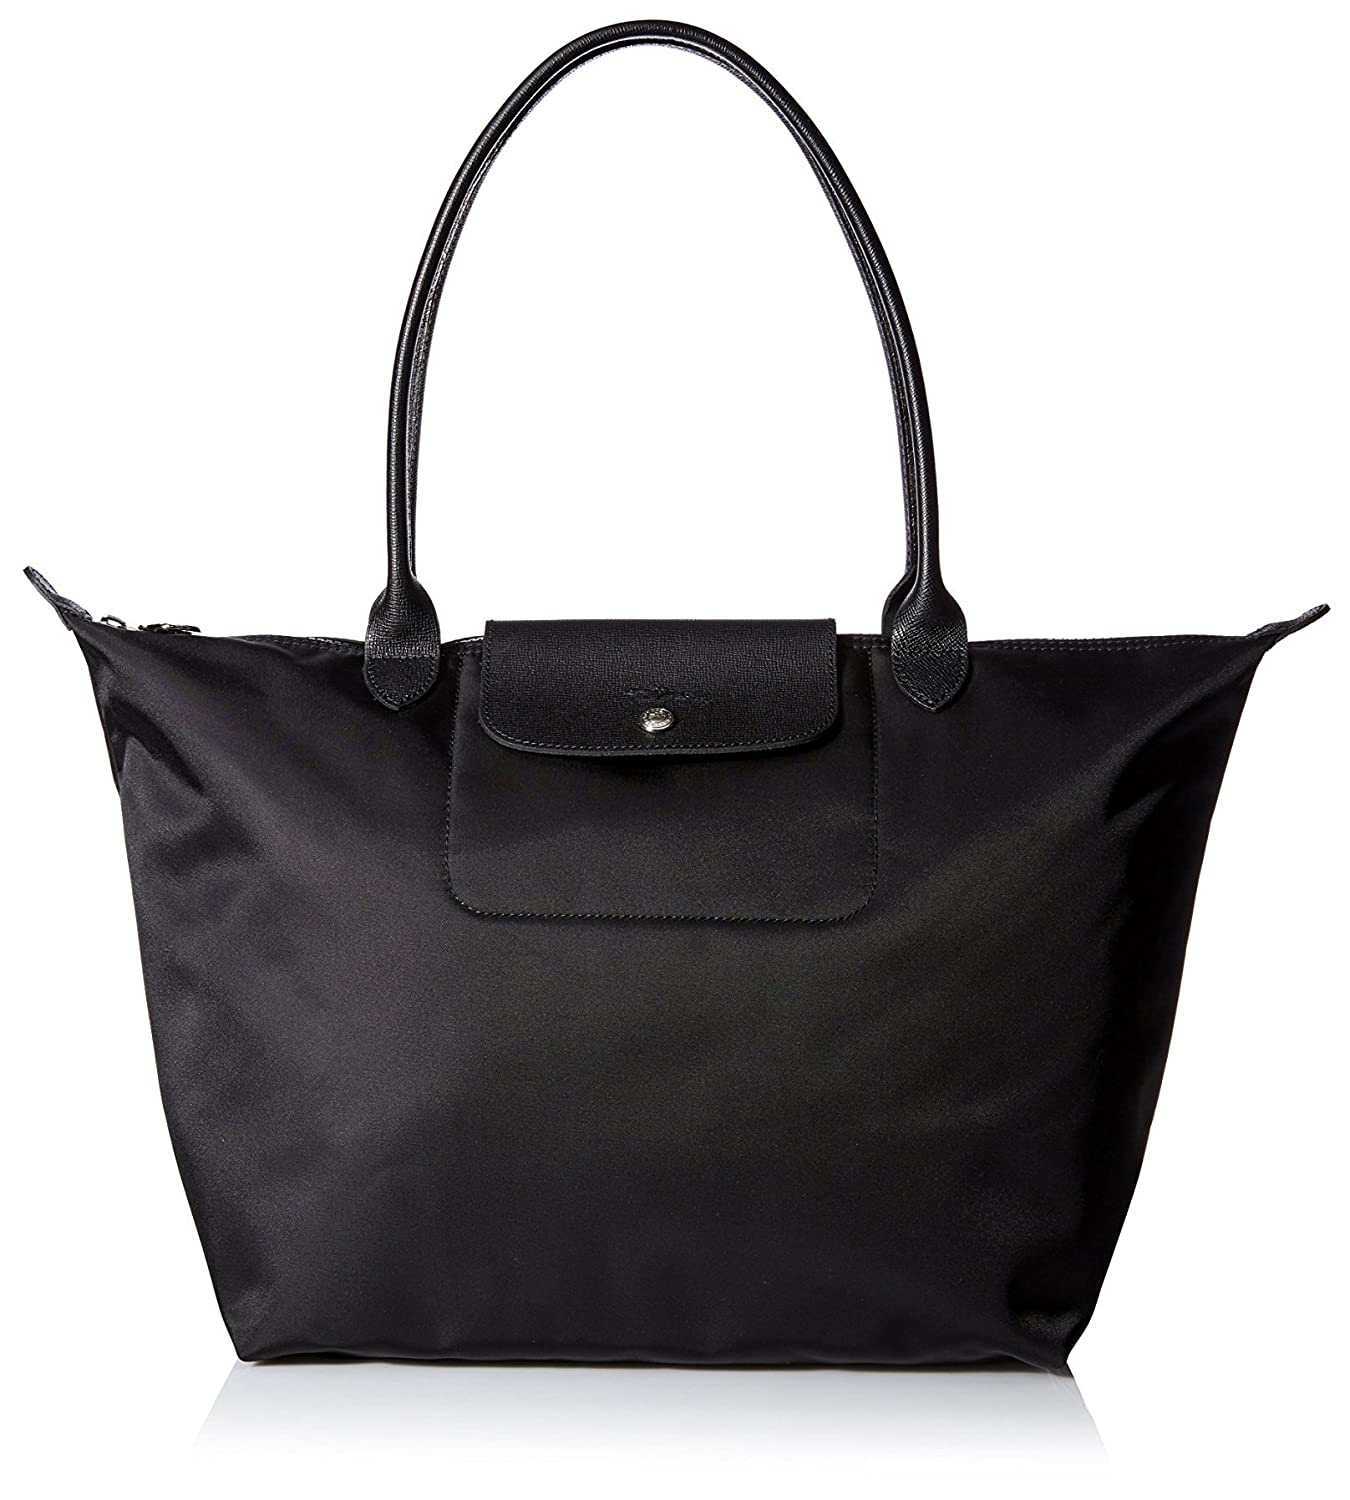 c60775311a28 Amazon.com  Longchamp Women s Le Pliage Néo Tote Bag